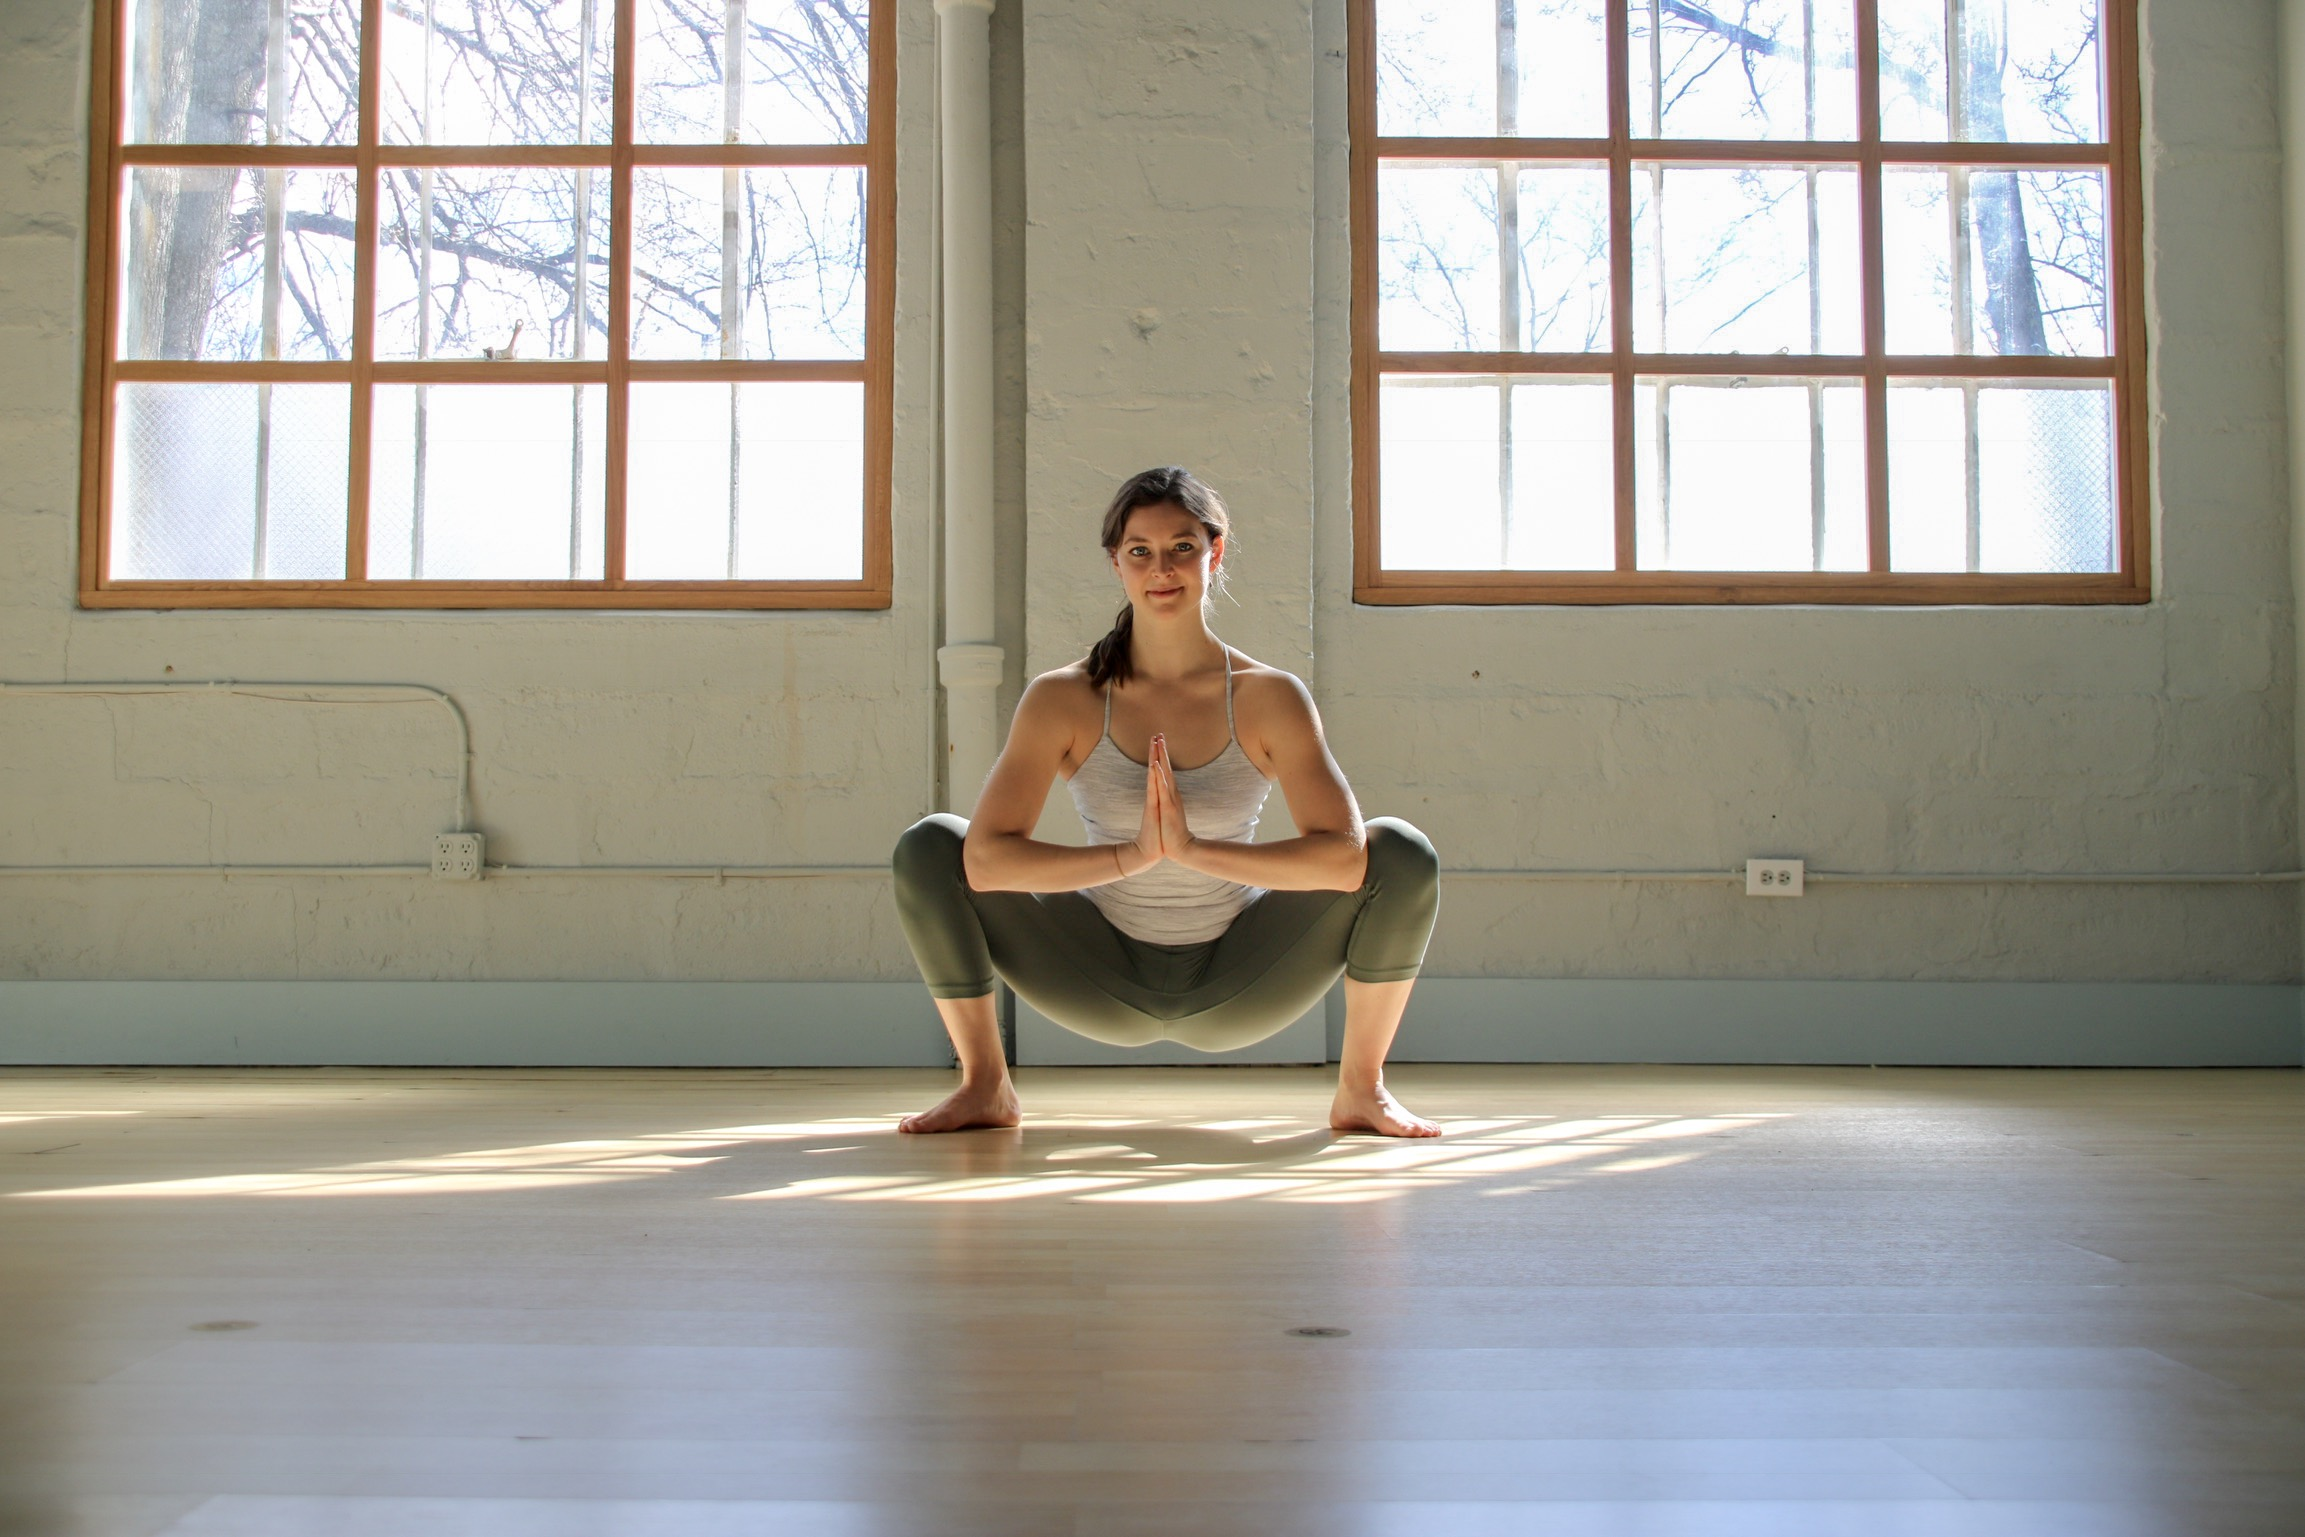 How to practice: Step feet wider than hip width distance, maybe as wide as your mat. Turn the toes out at an angle and sit the hips low. Keep the chest lifted and take hands to prayer at heart center.